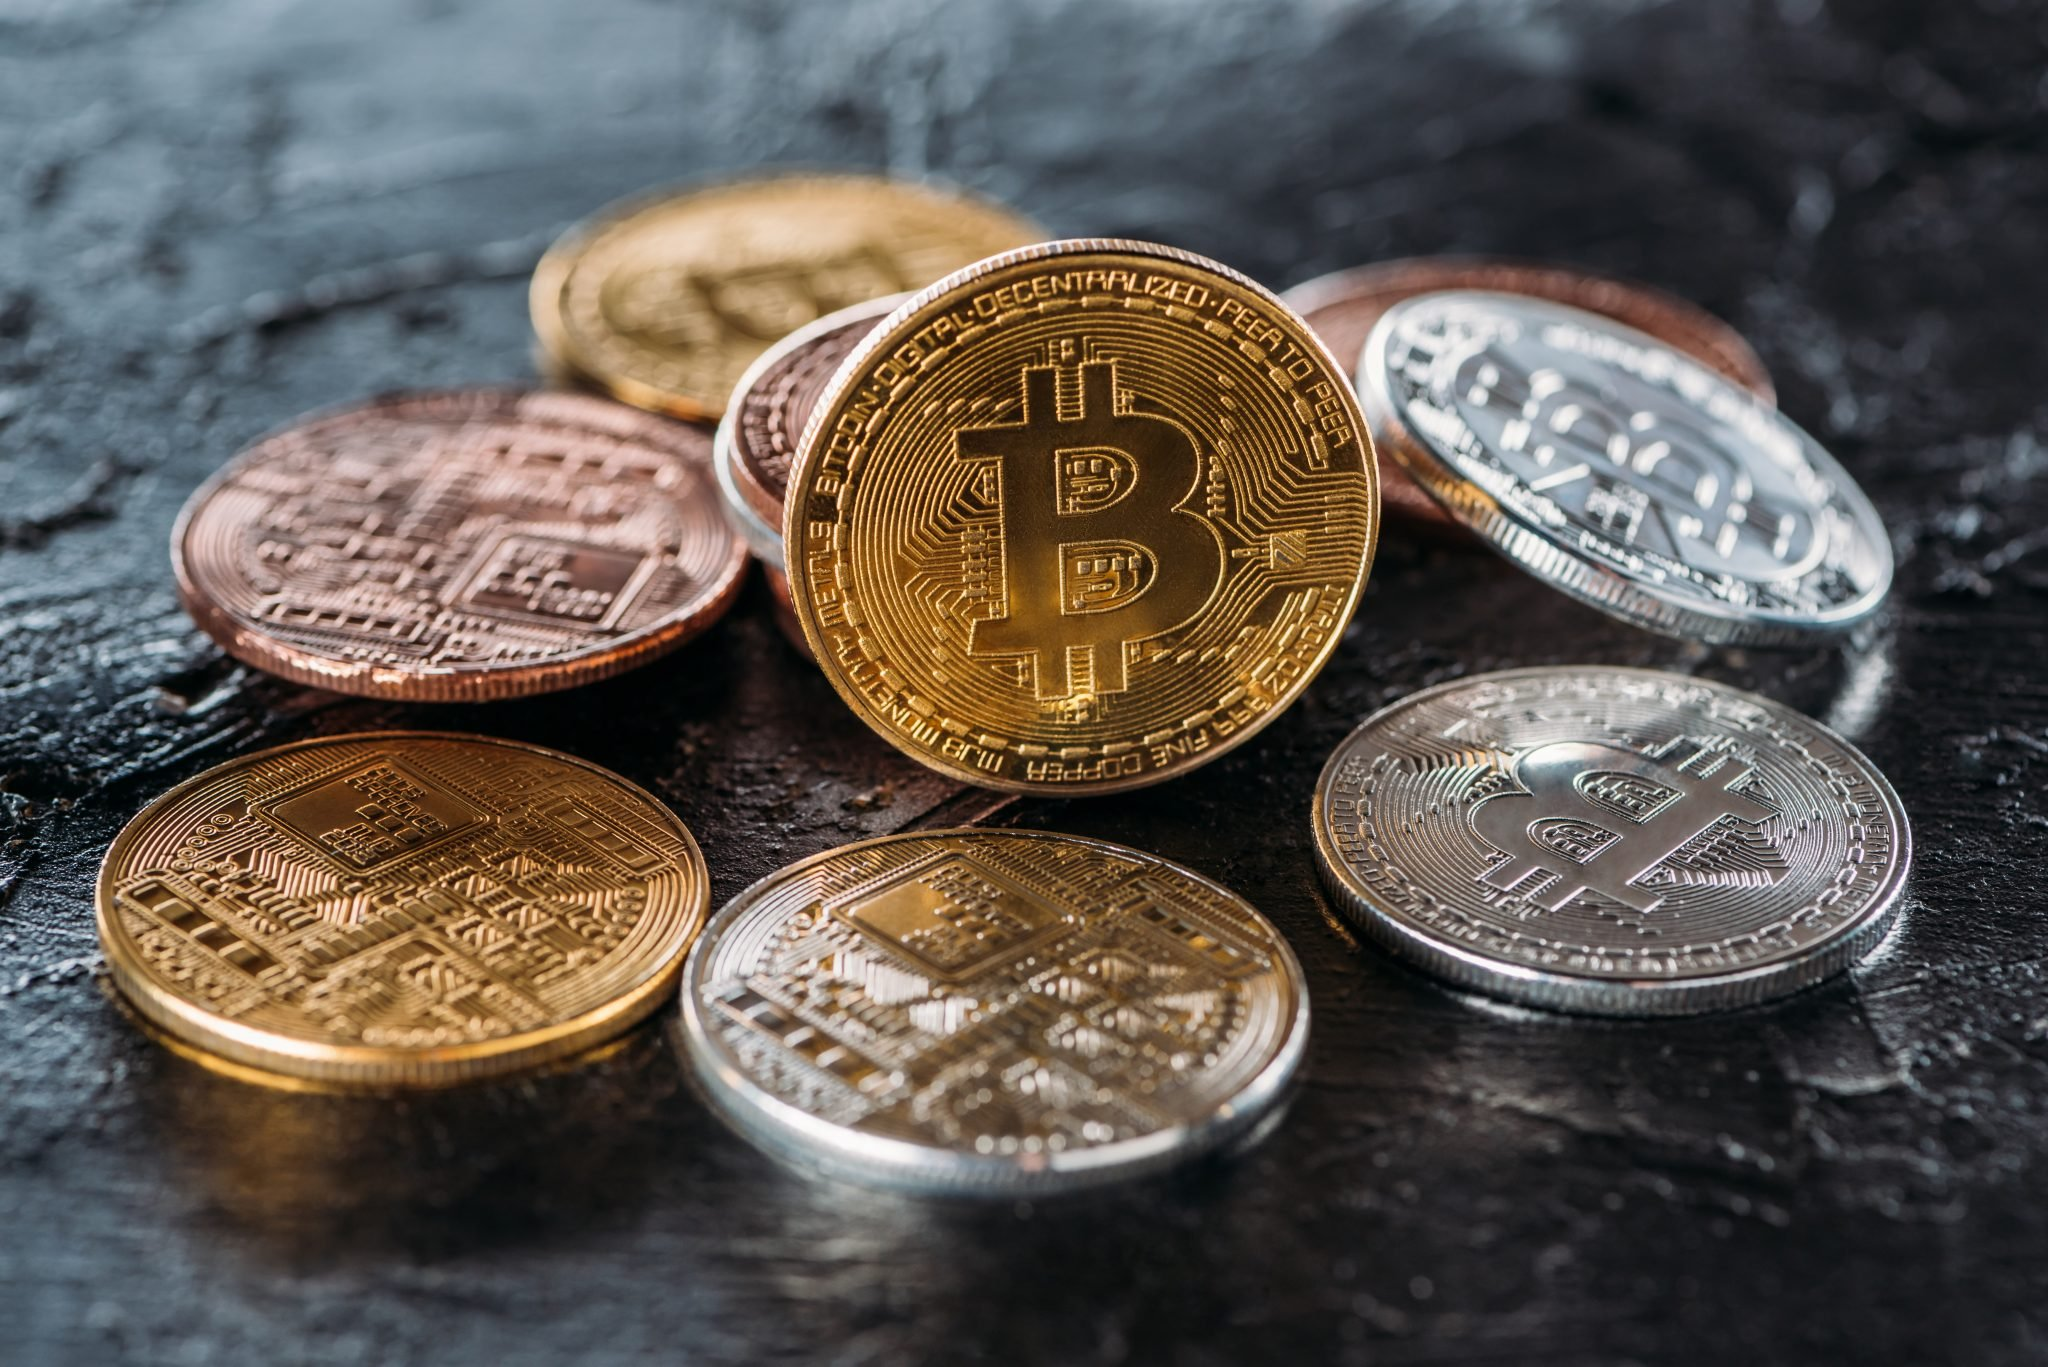 close up view of various bitcoins on dark surface